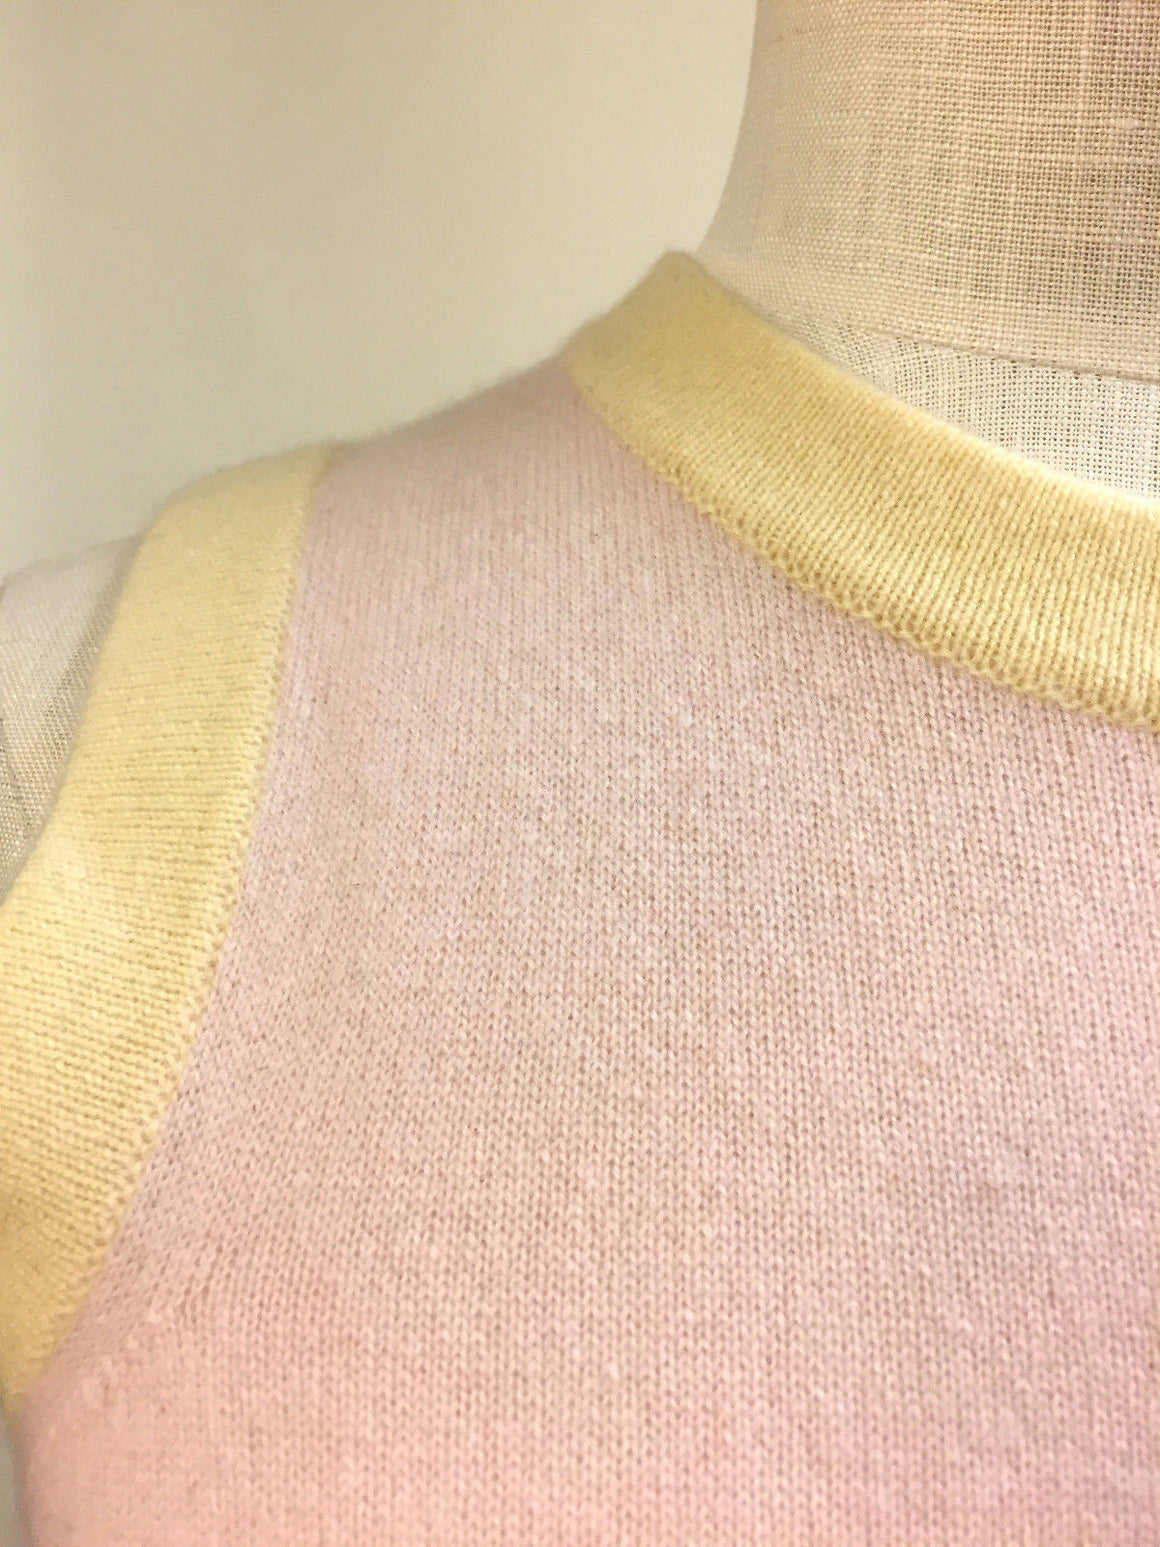 bisbiz.com BELINDA ROBERTSON Rose-Quartz Cashmere Sleeveless Top with Yellow Trim Size: Medium - Bis Luxury Resale